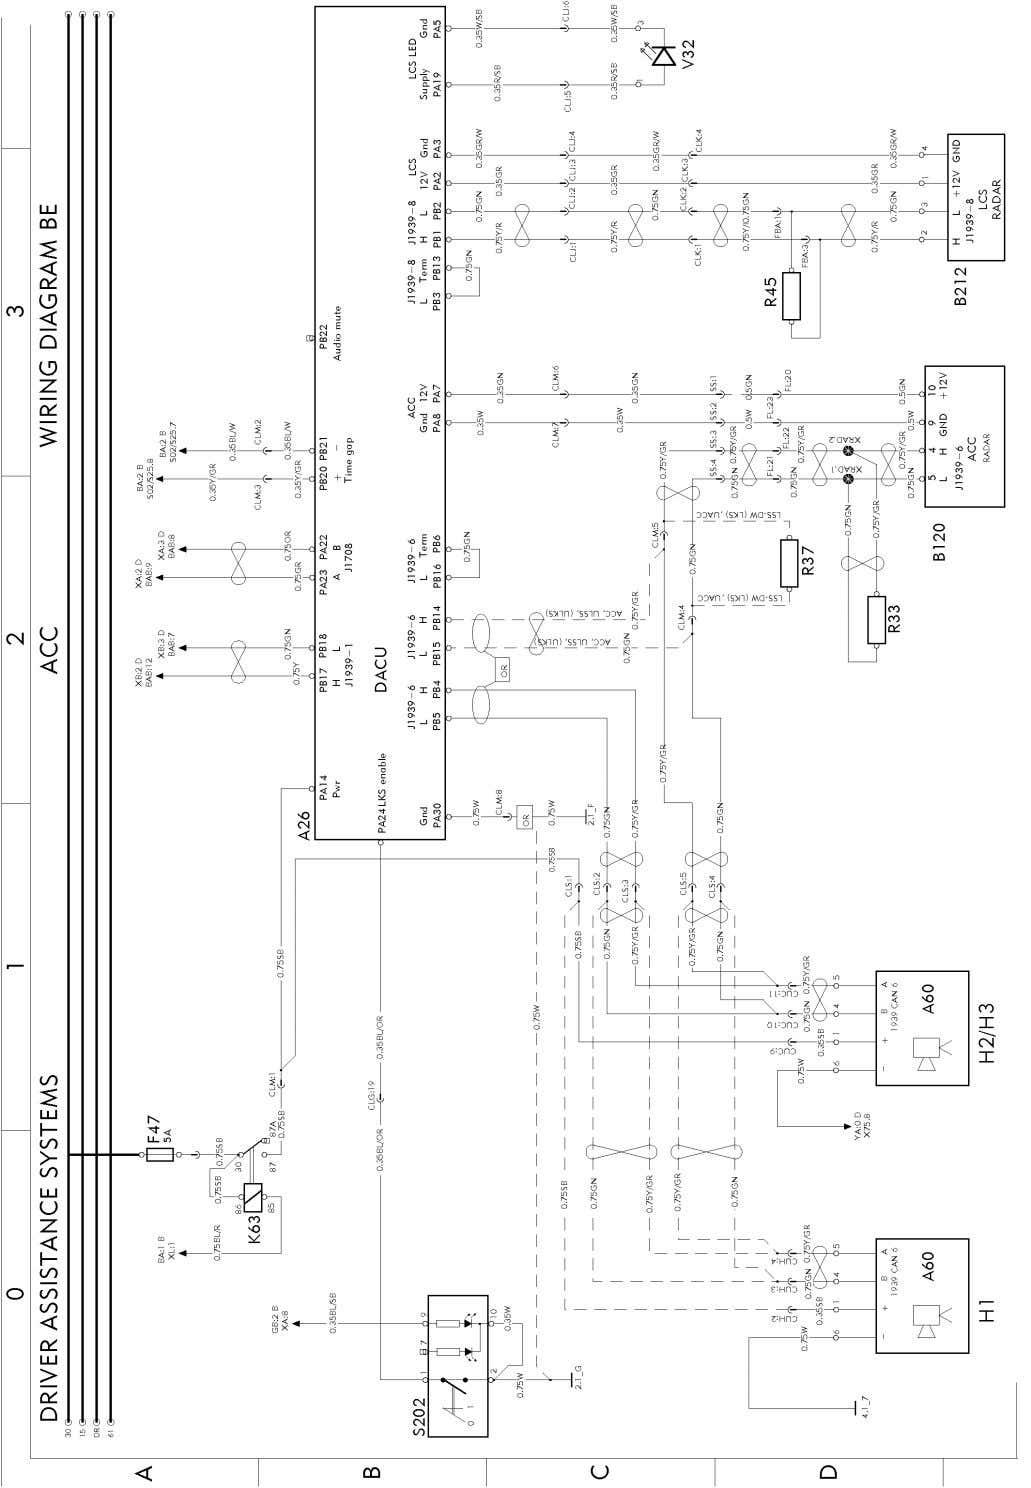 T3021434 Wiring diagram Page 13 (298)